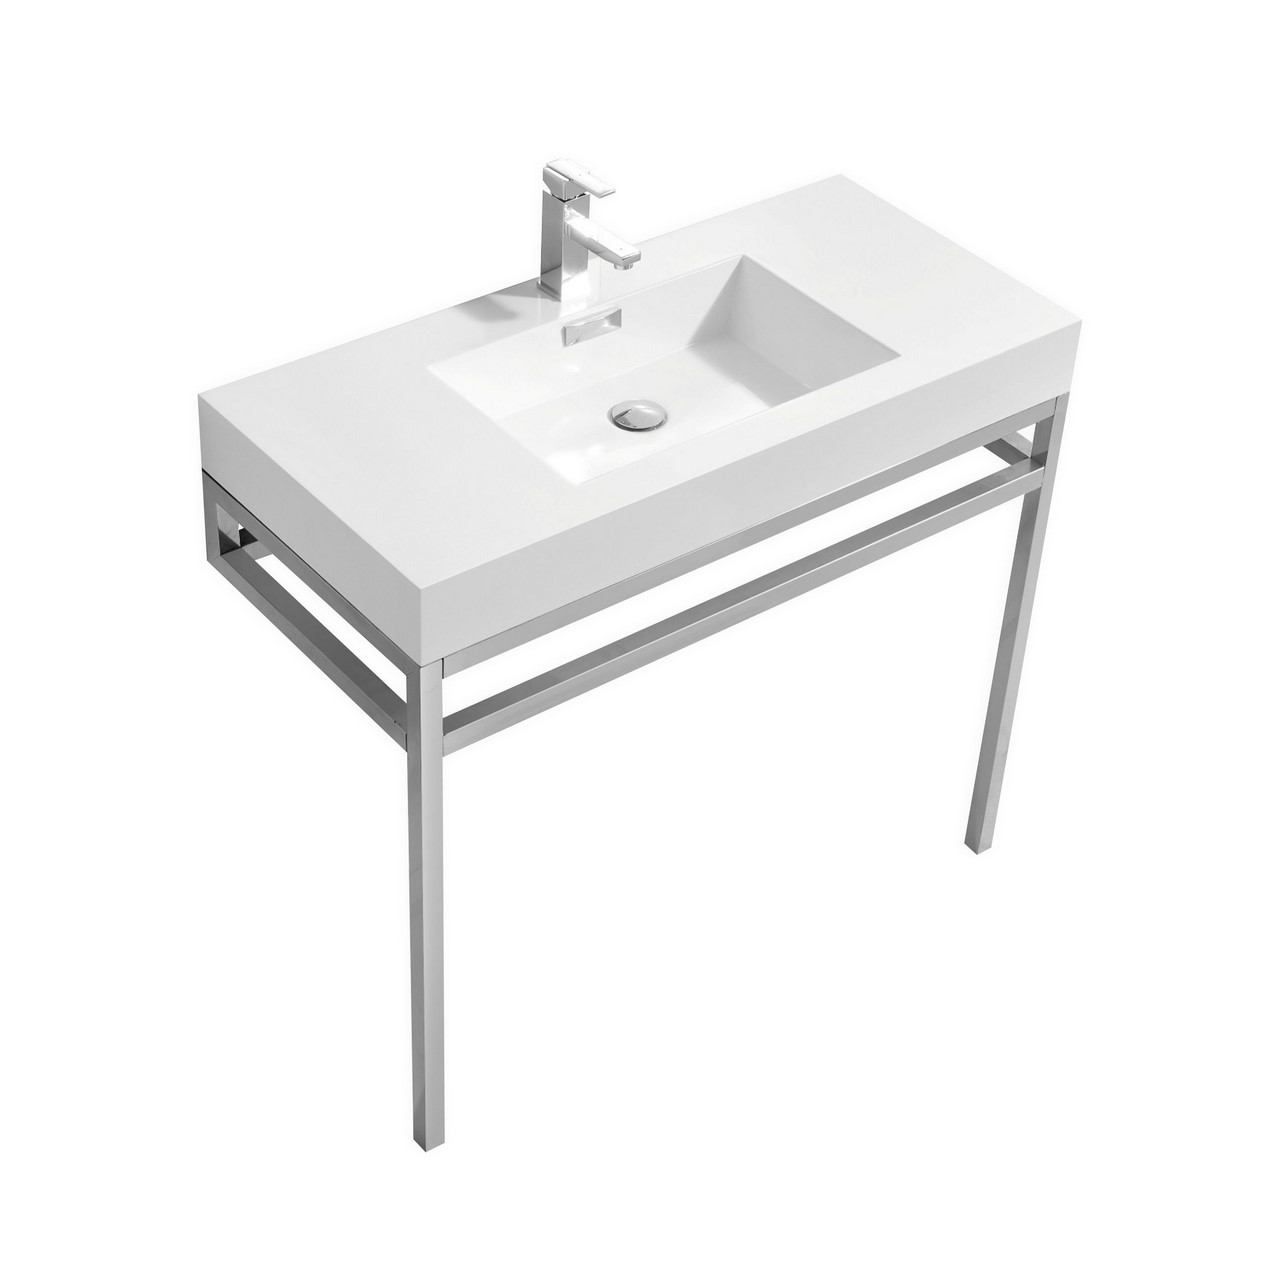 "Modern Lux 40"" Stainless Steel Console w/ White Acrylic Sink - Chrome"